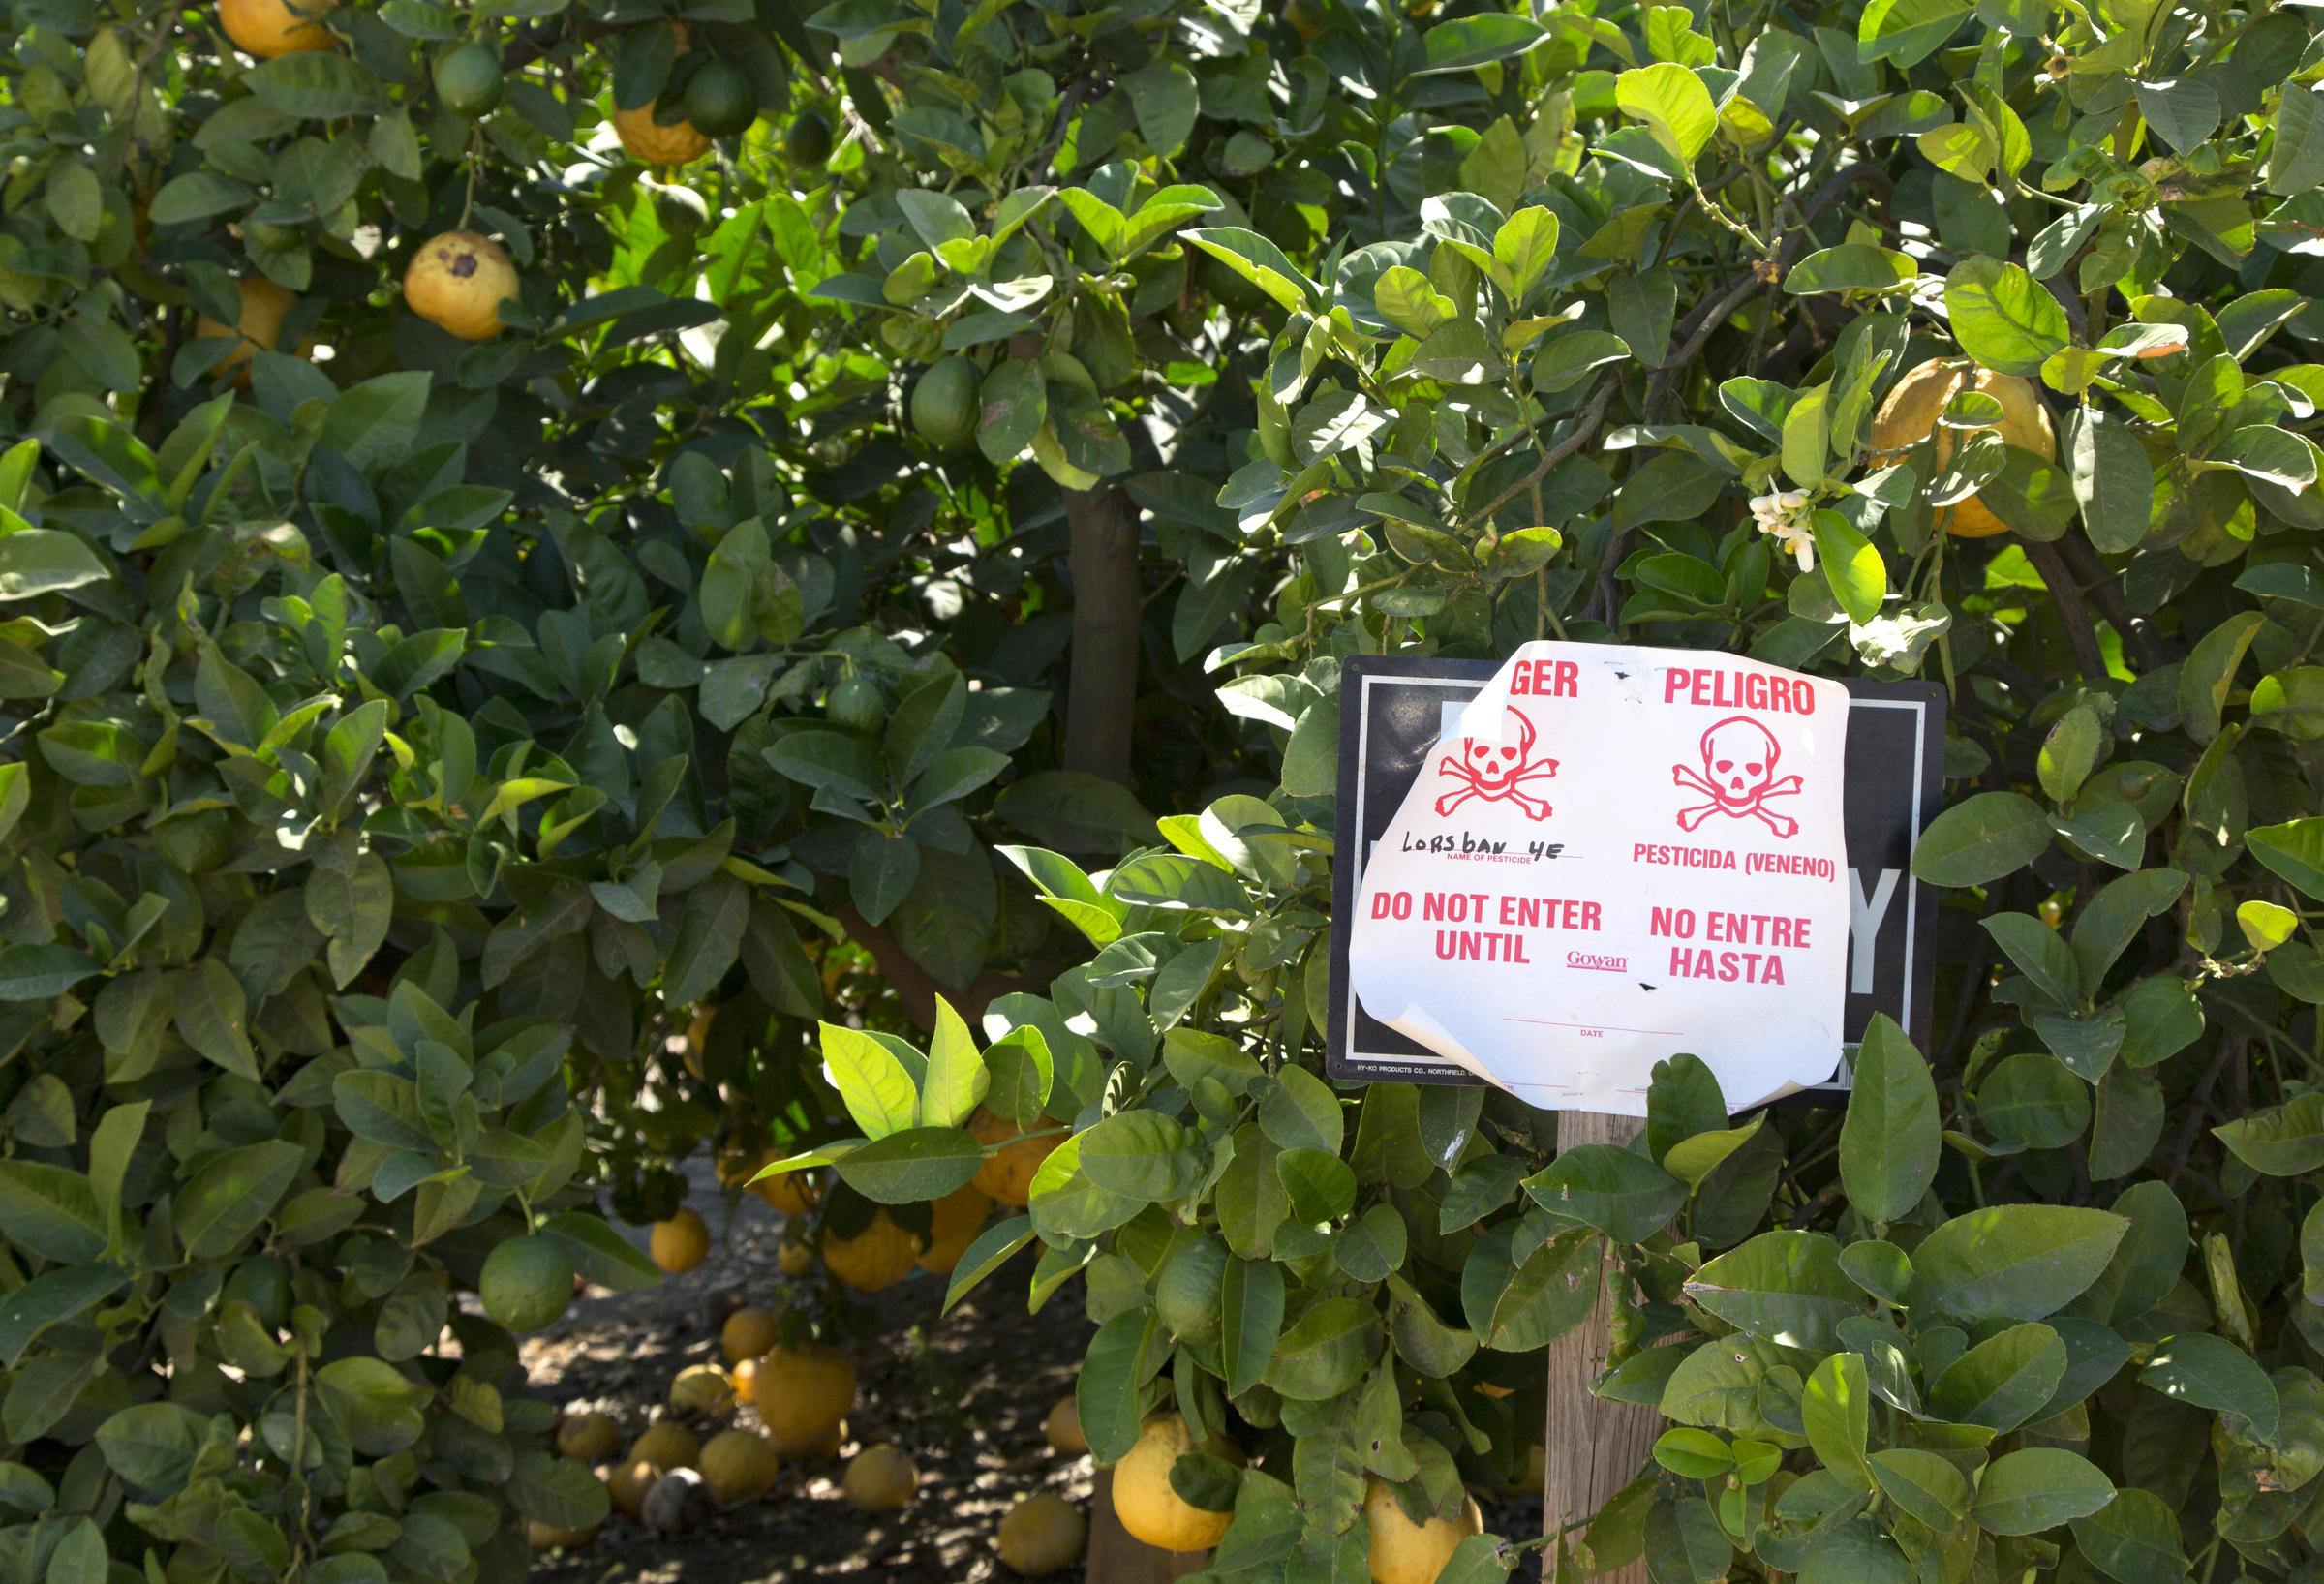 Will An Appeals Court Make The EPA Ban A Pesticide Linked To